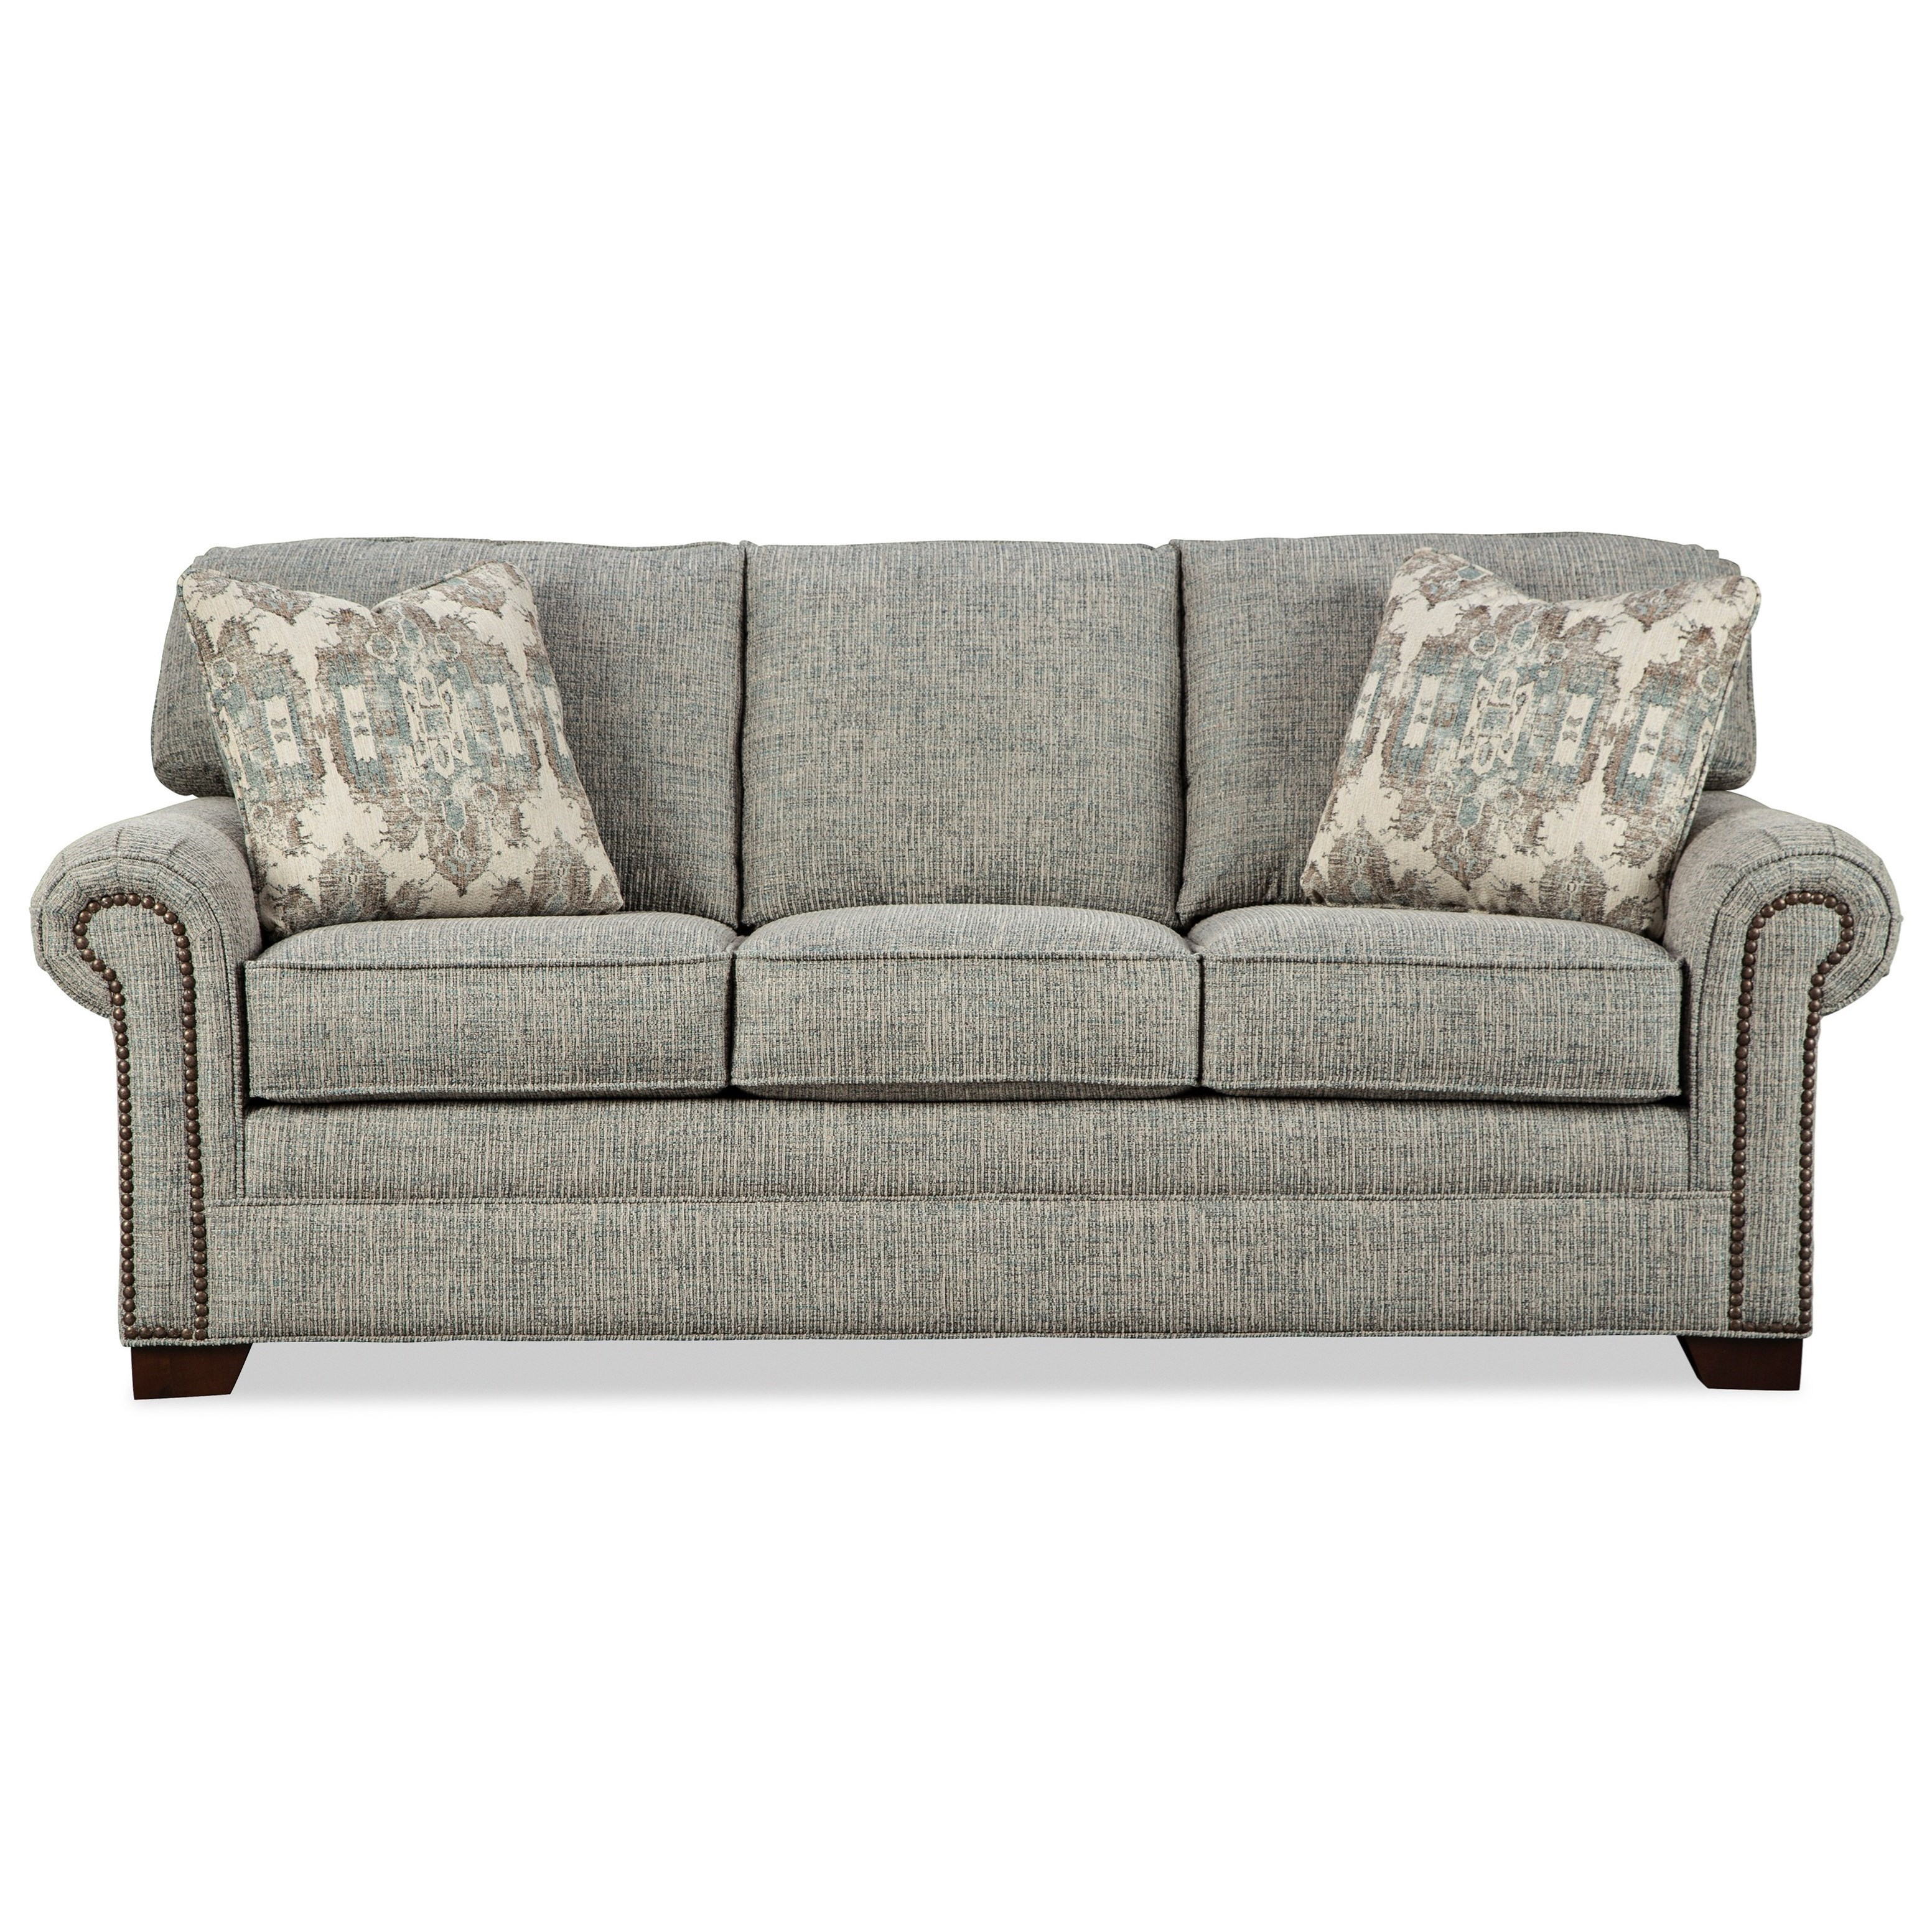 Transitional Sleeper Sofa with Large Rolled Arms and Brass Nailheads